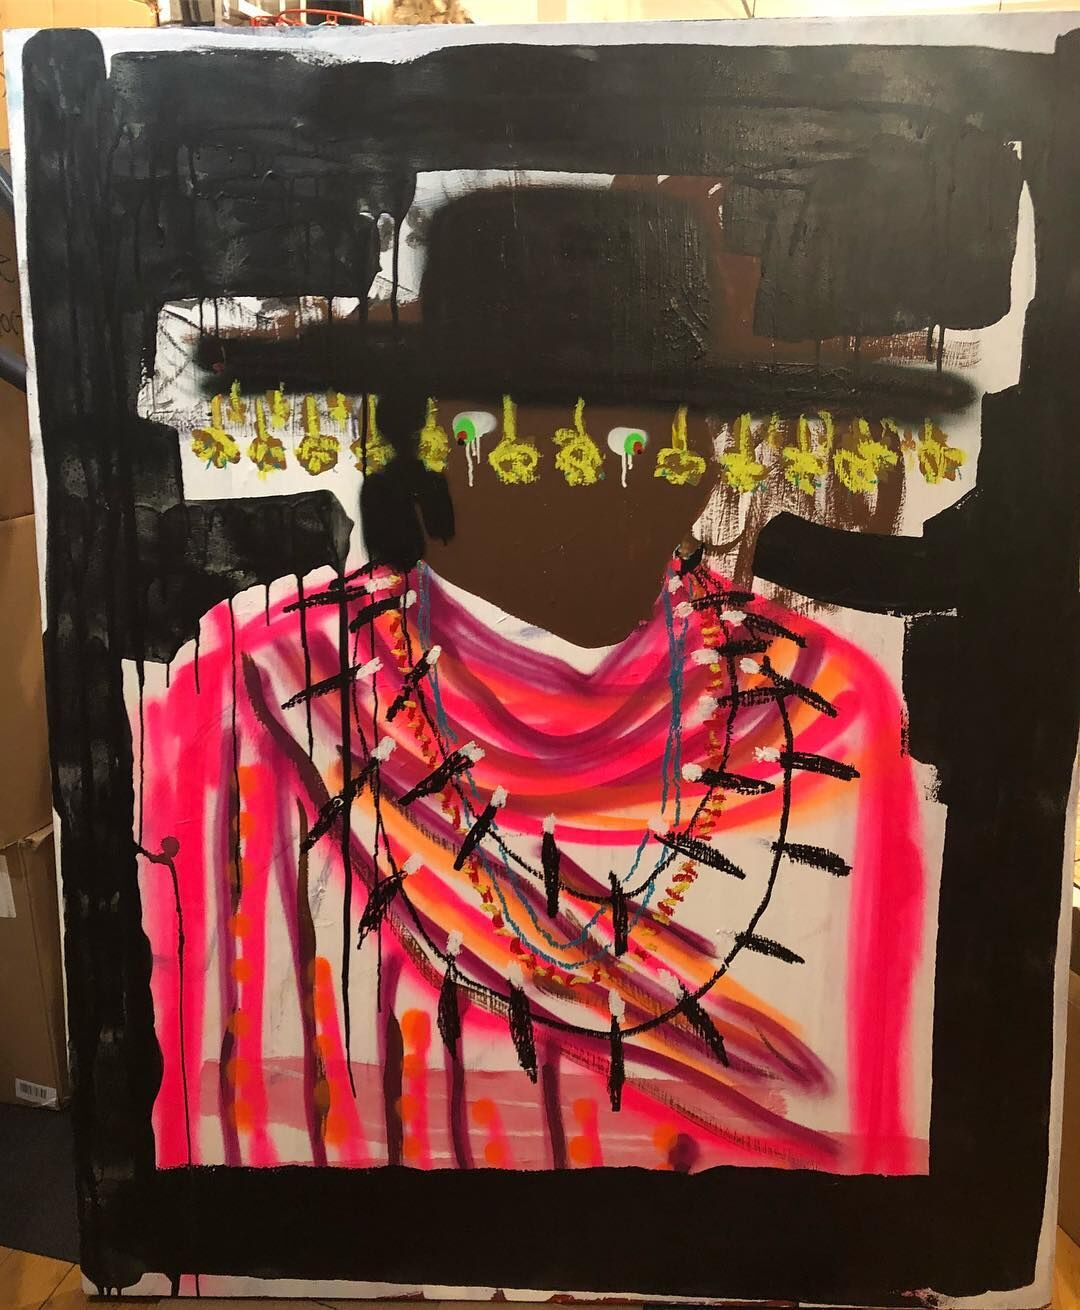 Ariyan Arslani, Sly and the Family Stone, 2018. Courtesy of the artist.